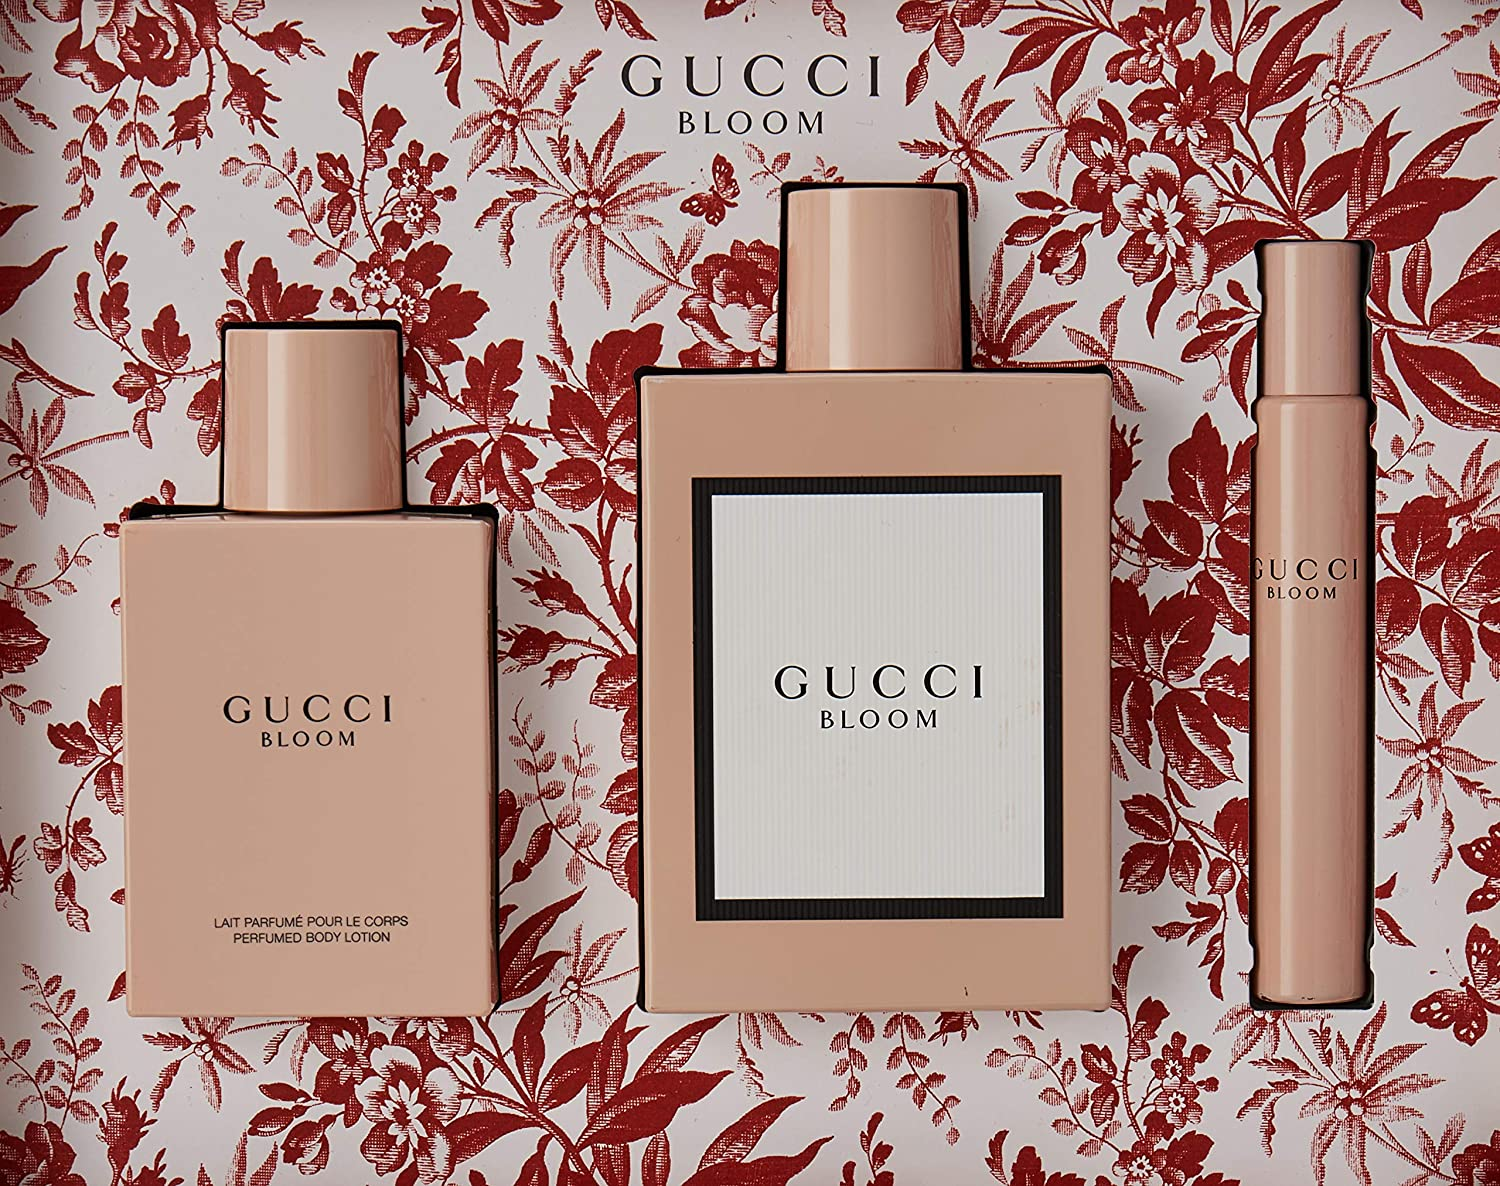 Gucci bloom edp 100ml + body 100ml + mini 7,5ml.: Amazon.es: Belleza